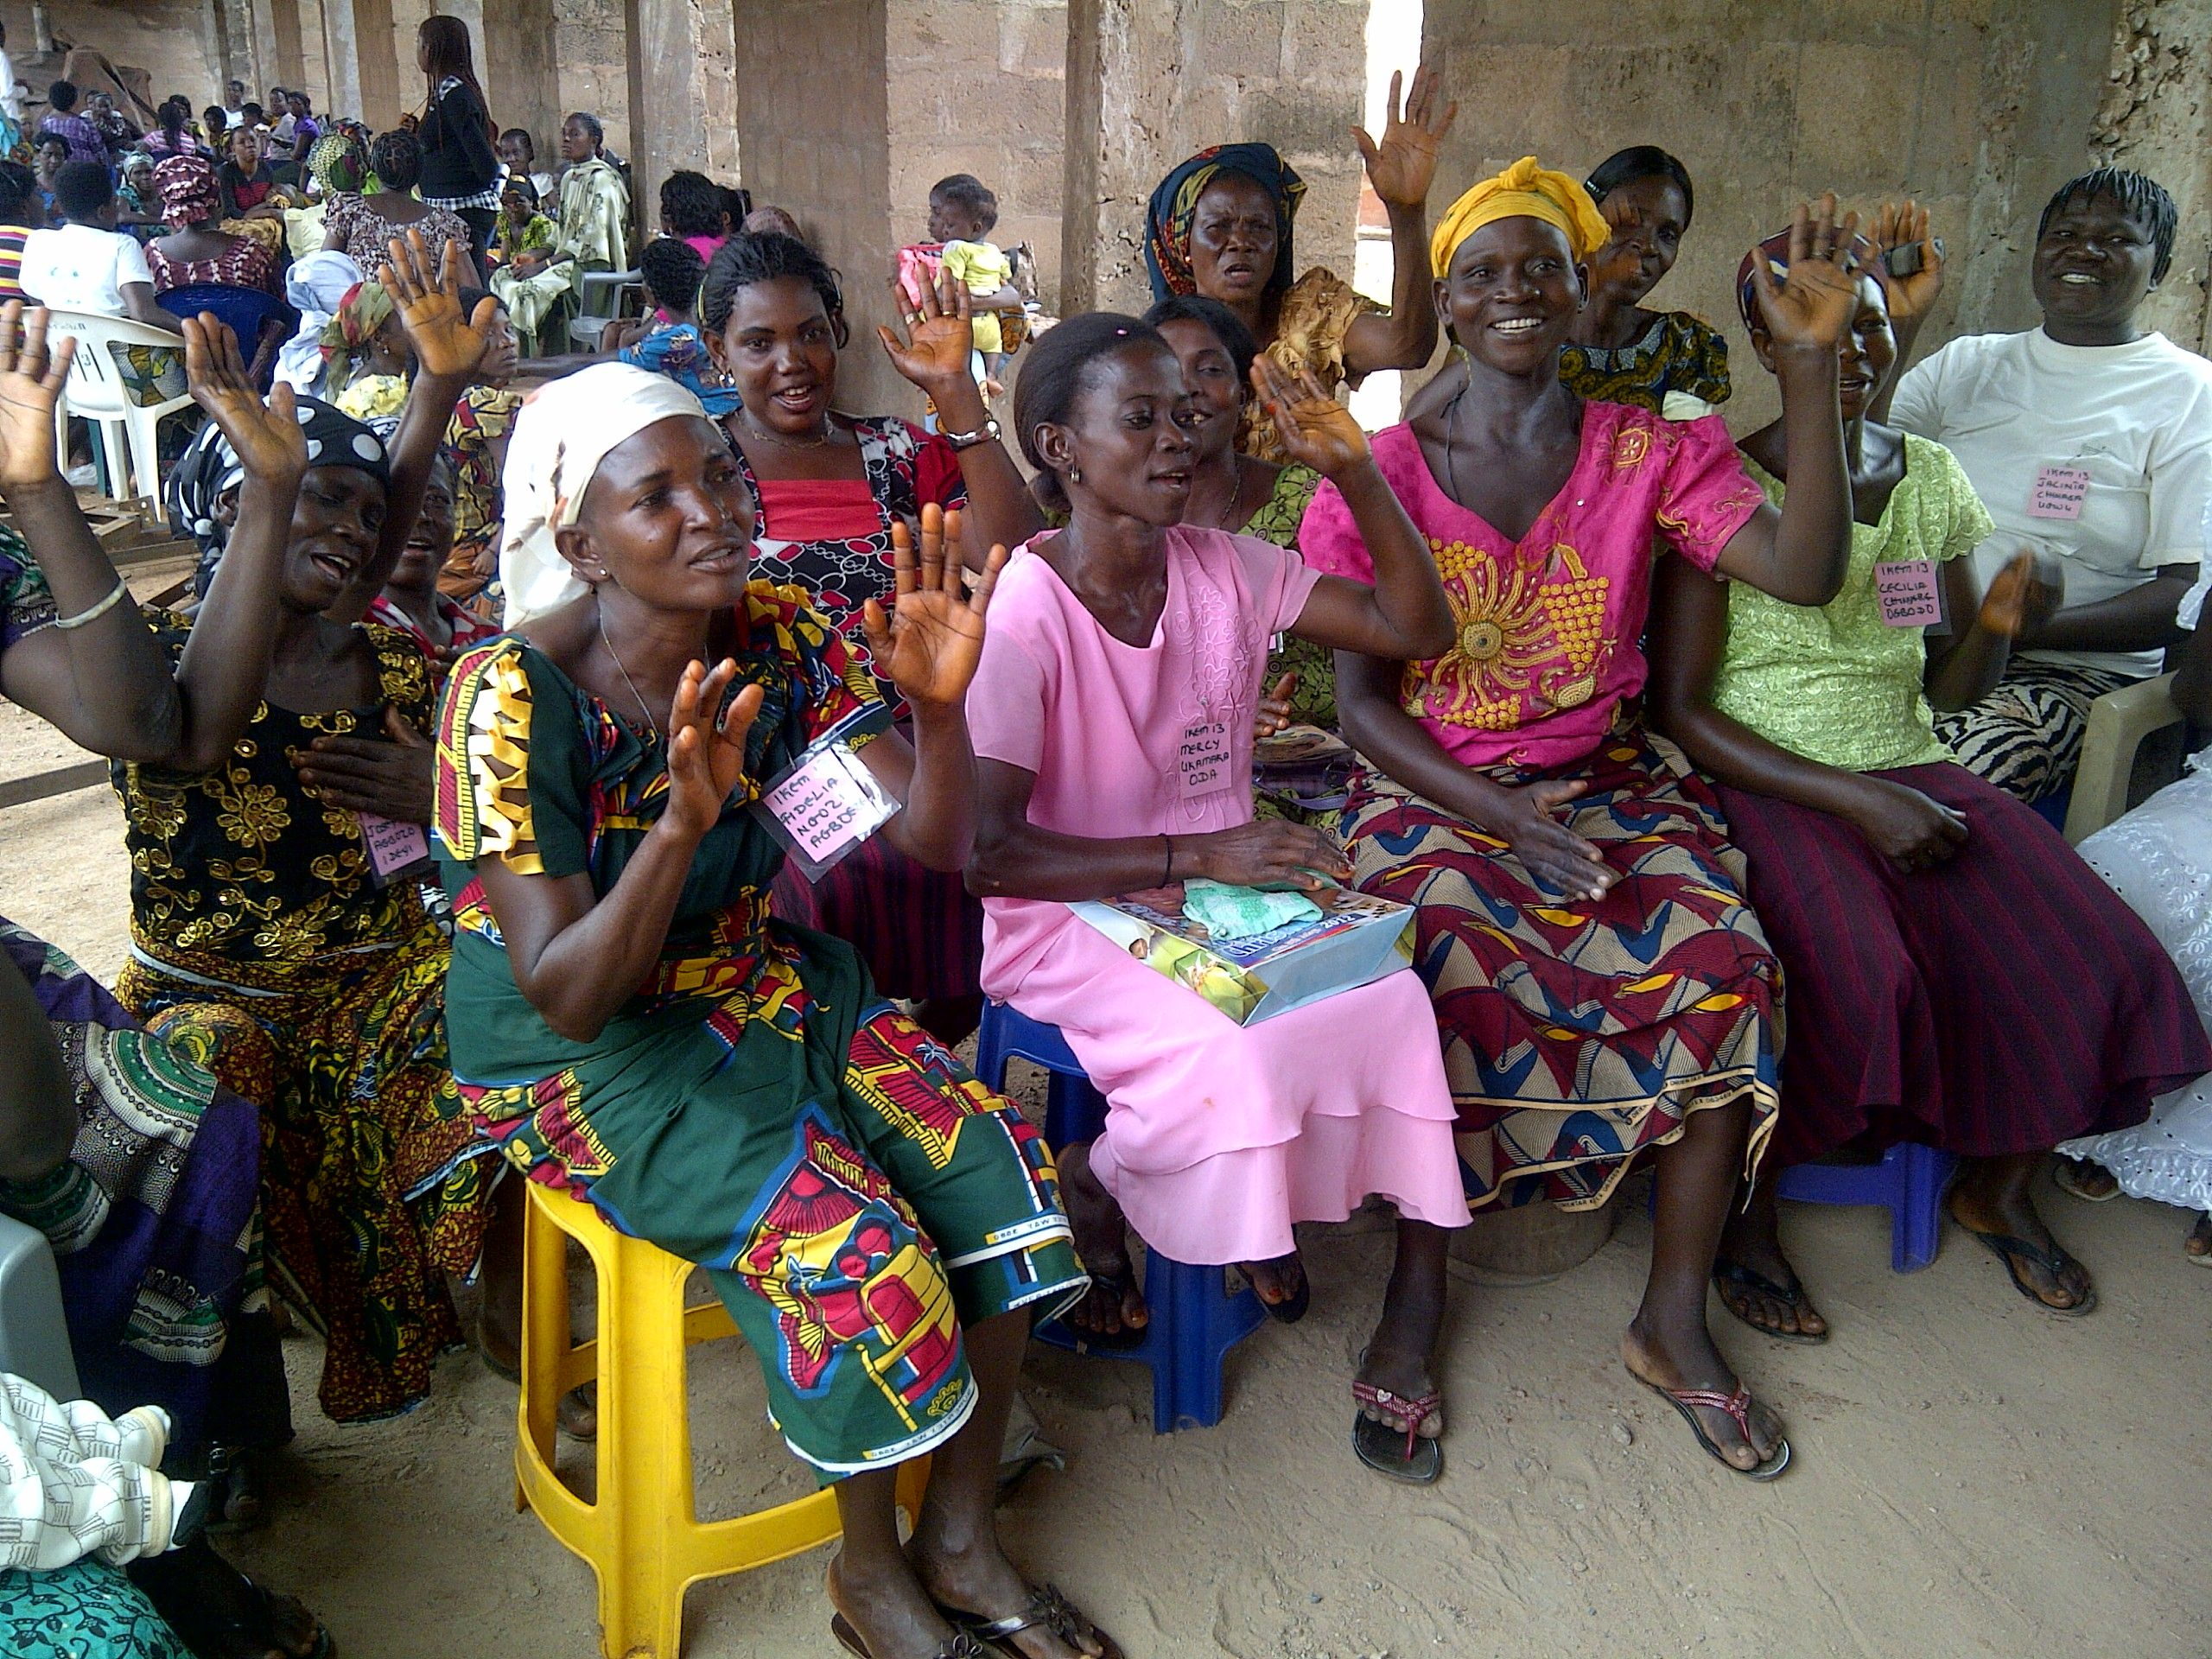 Participants gather together in a Women for Women training center